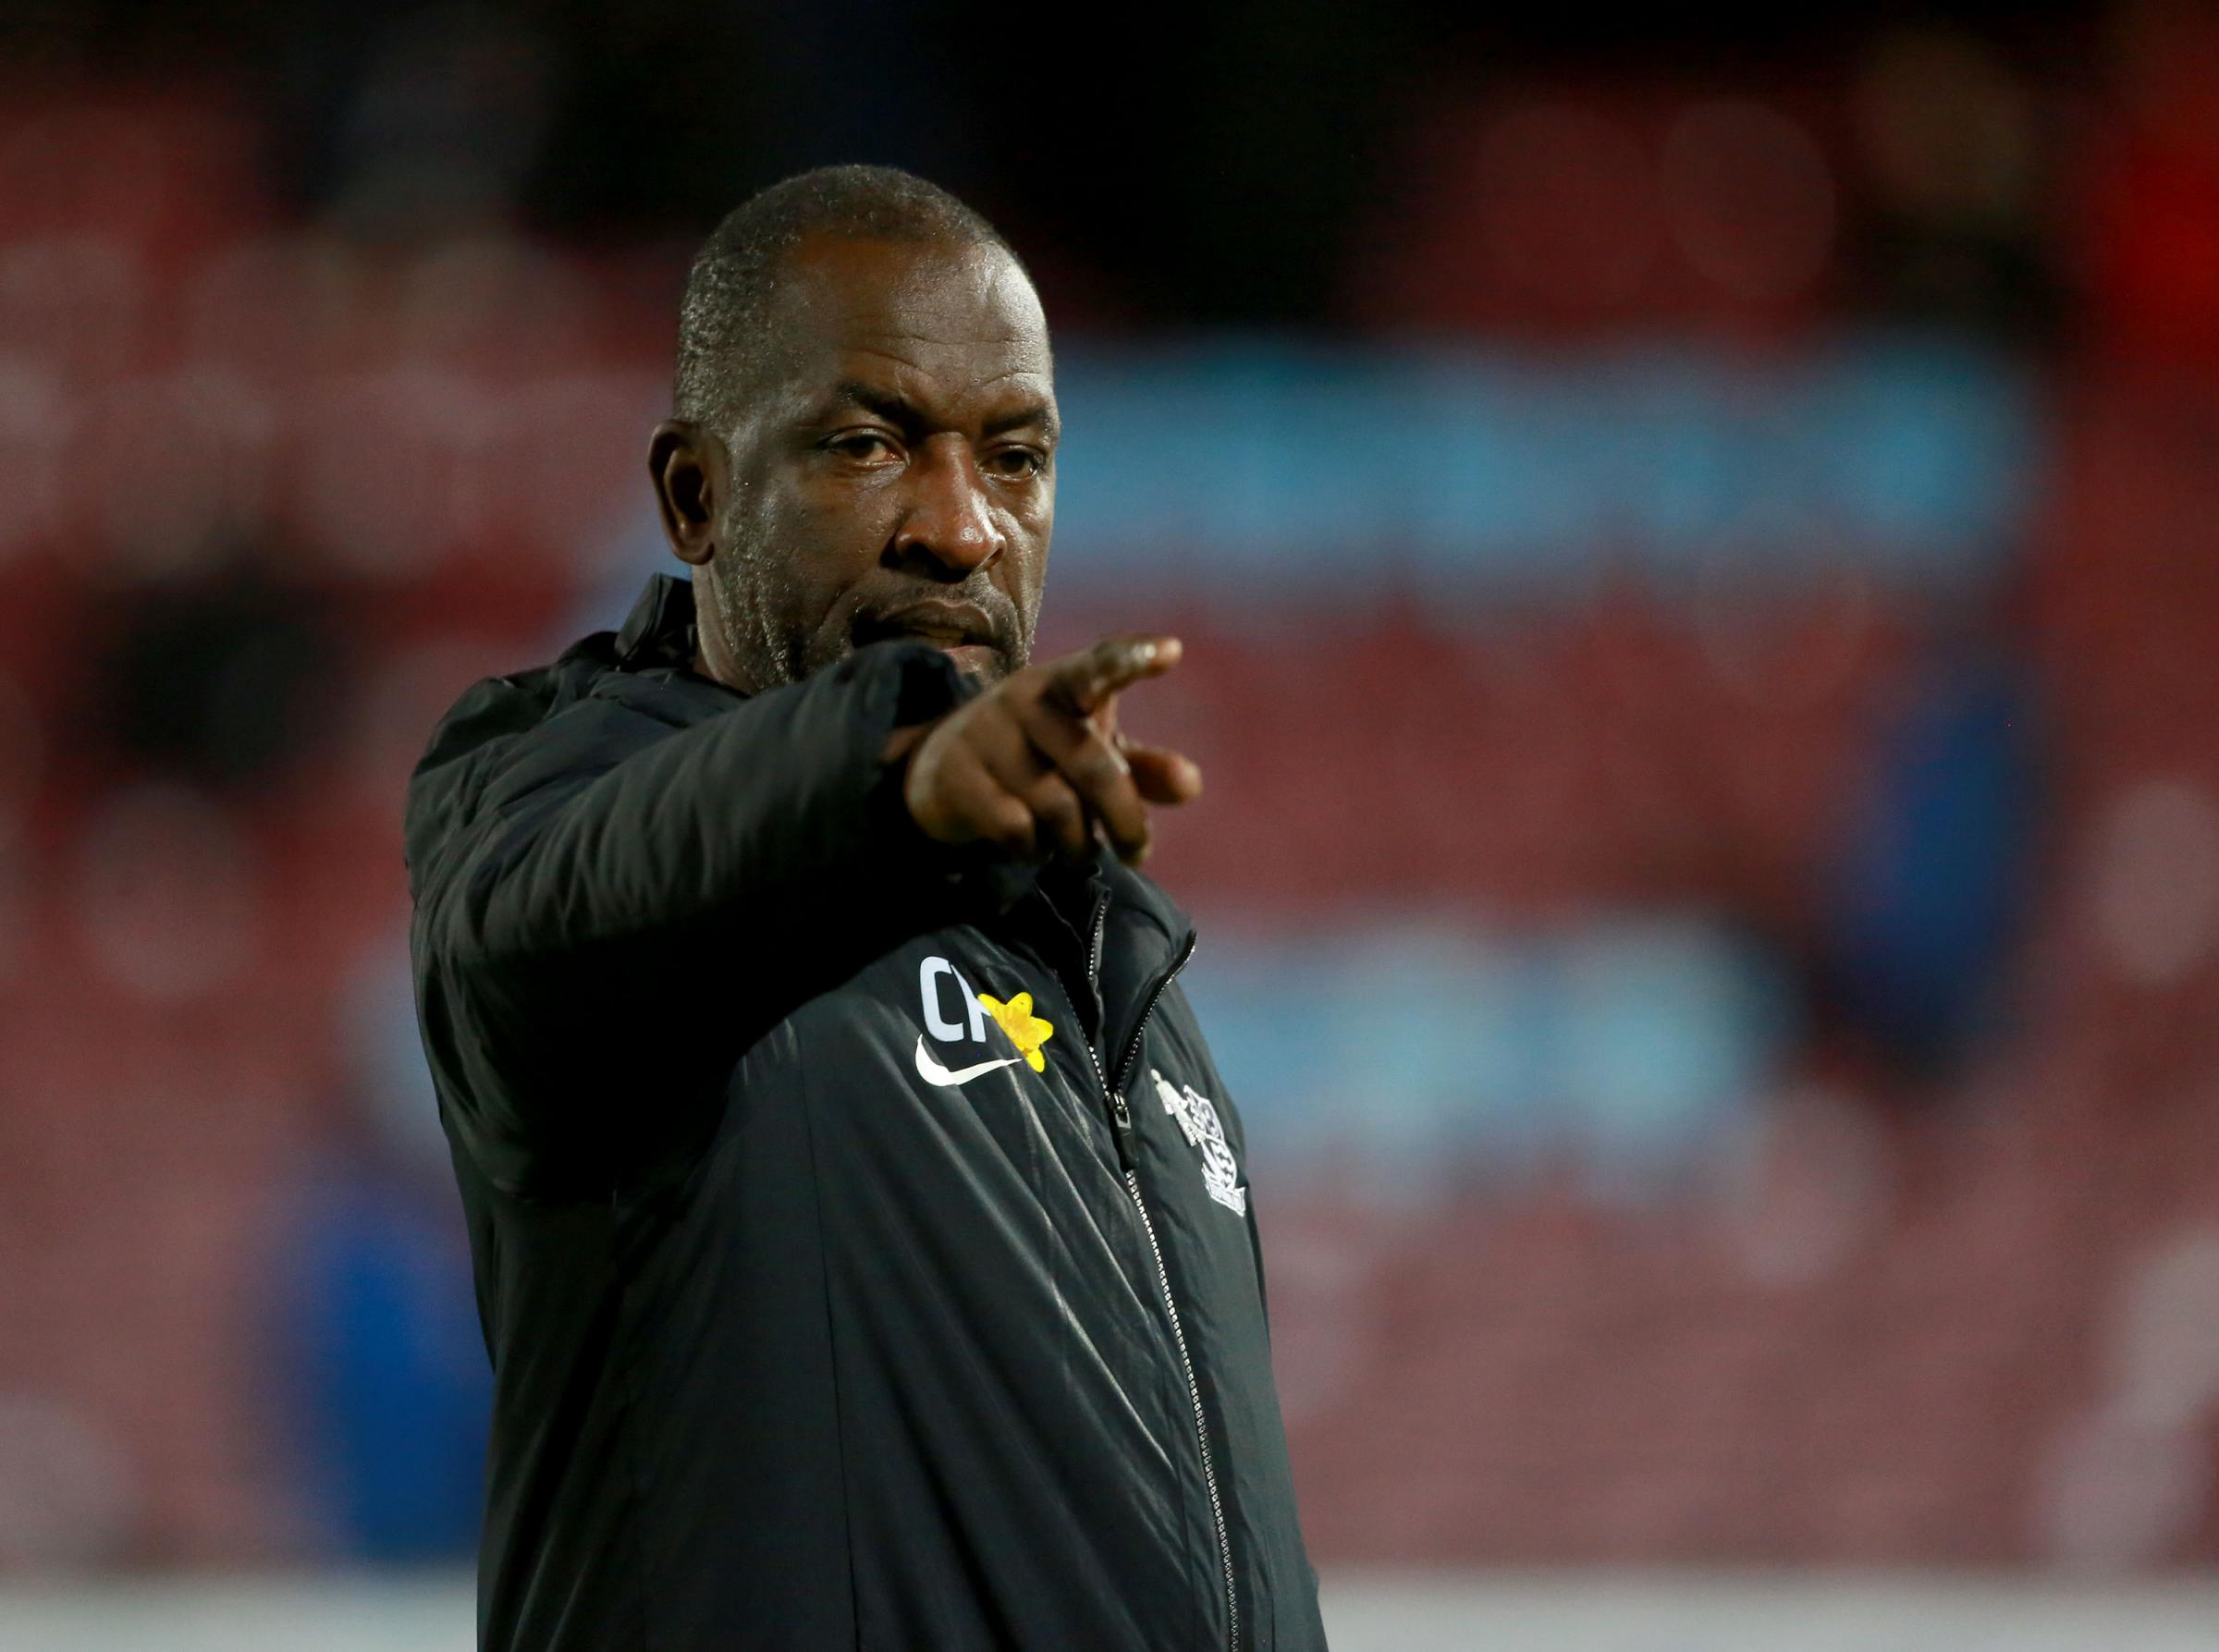 Linked with Walsall - former Southend United manager Chris Powell